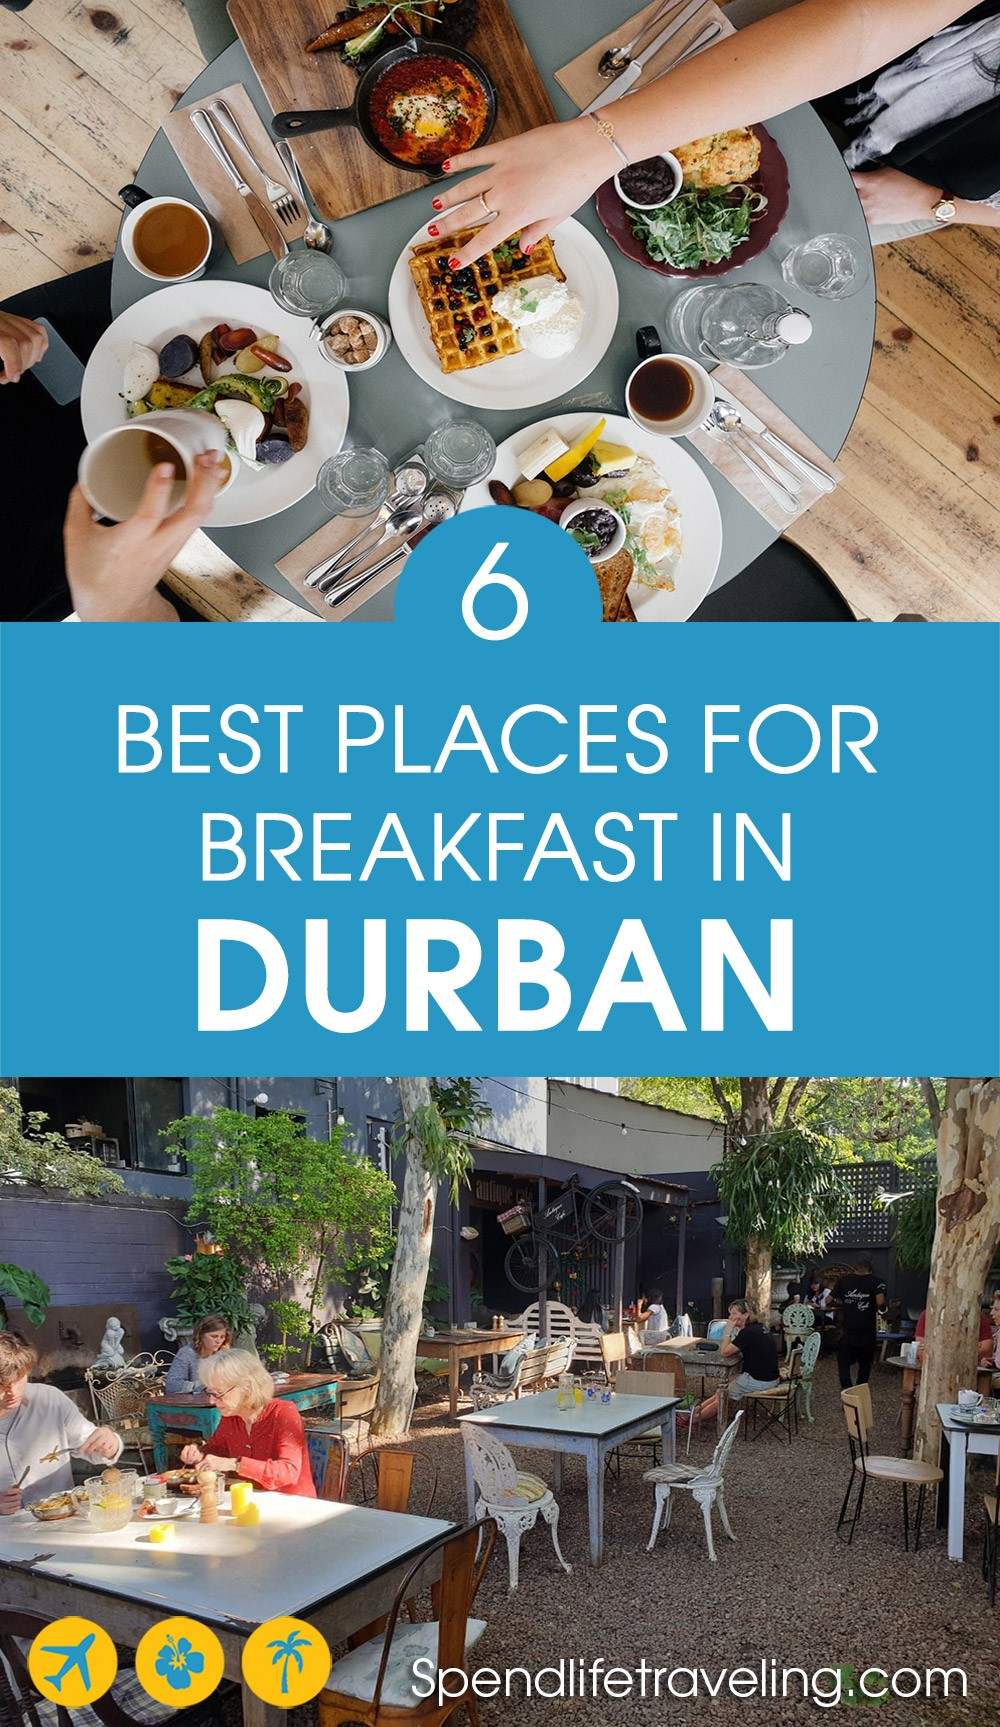 Are you looking for the best breakfast places in #Durban, South Africa? Check out these 6 spots. #southafrica #Durbanbreakfast